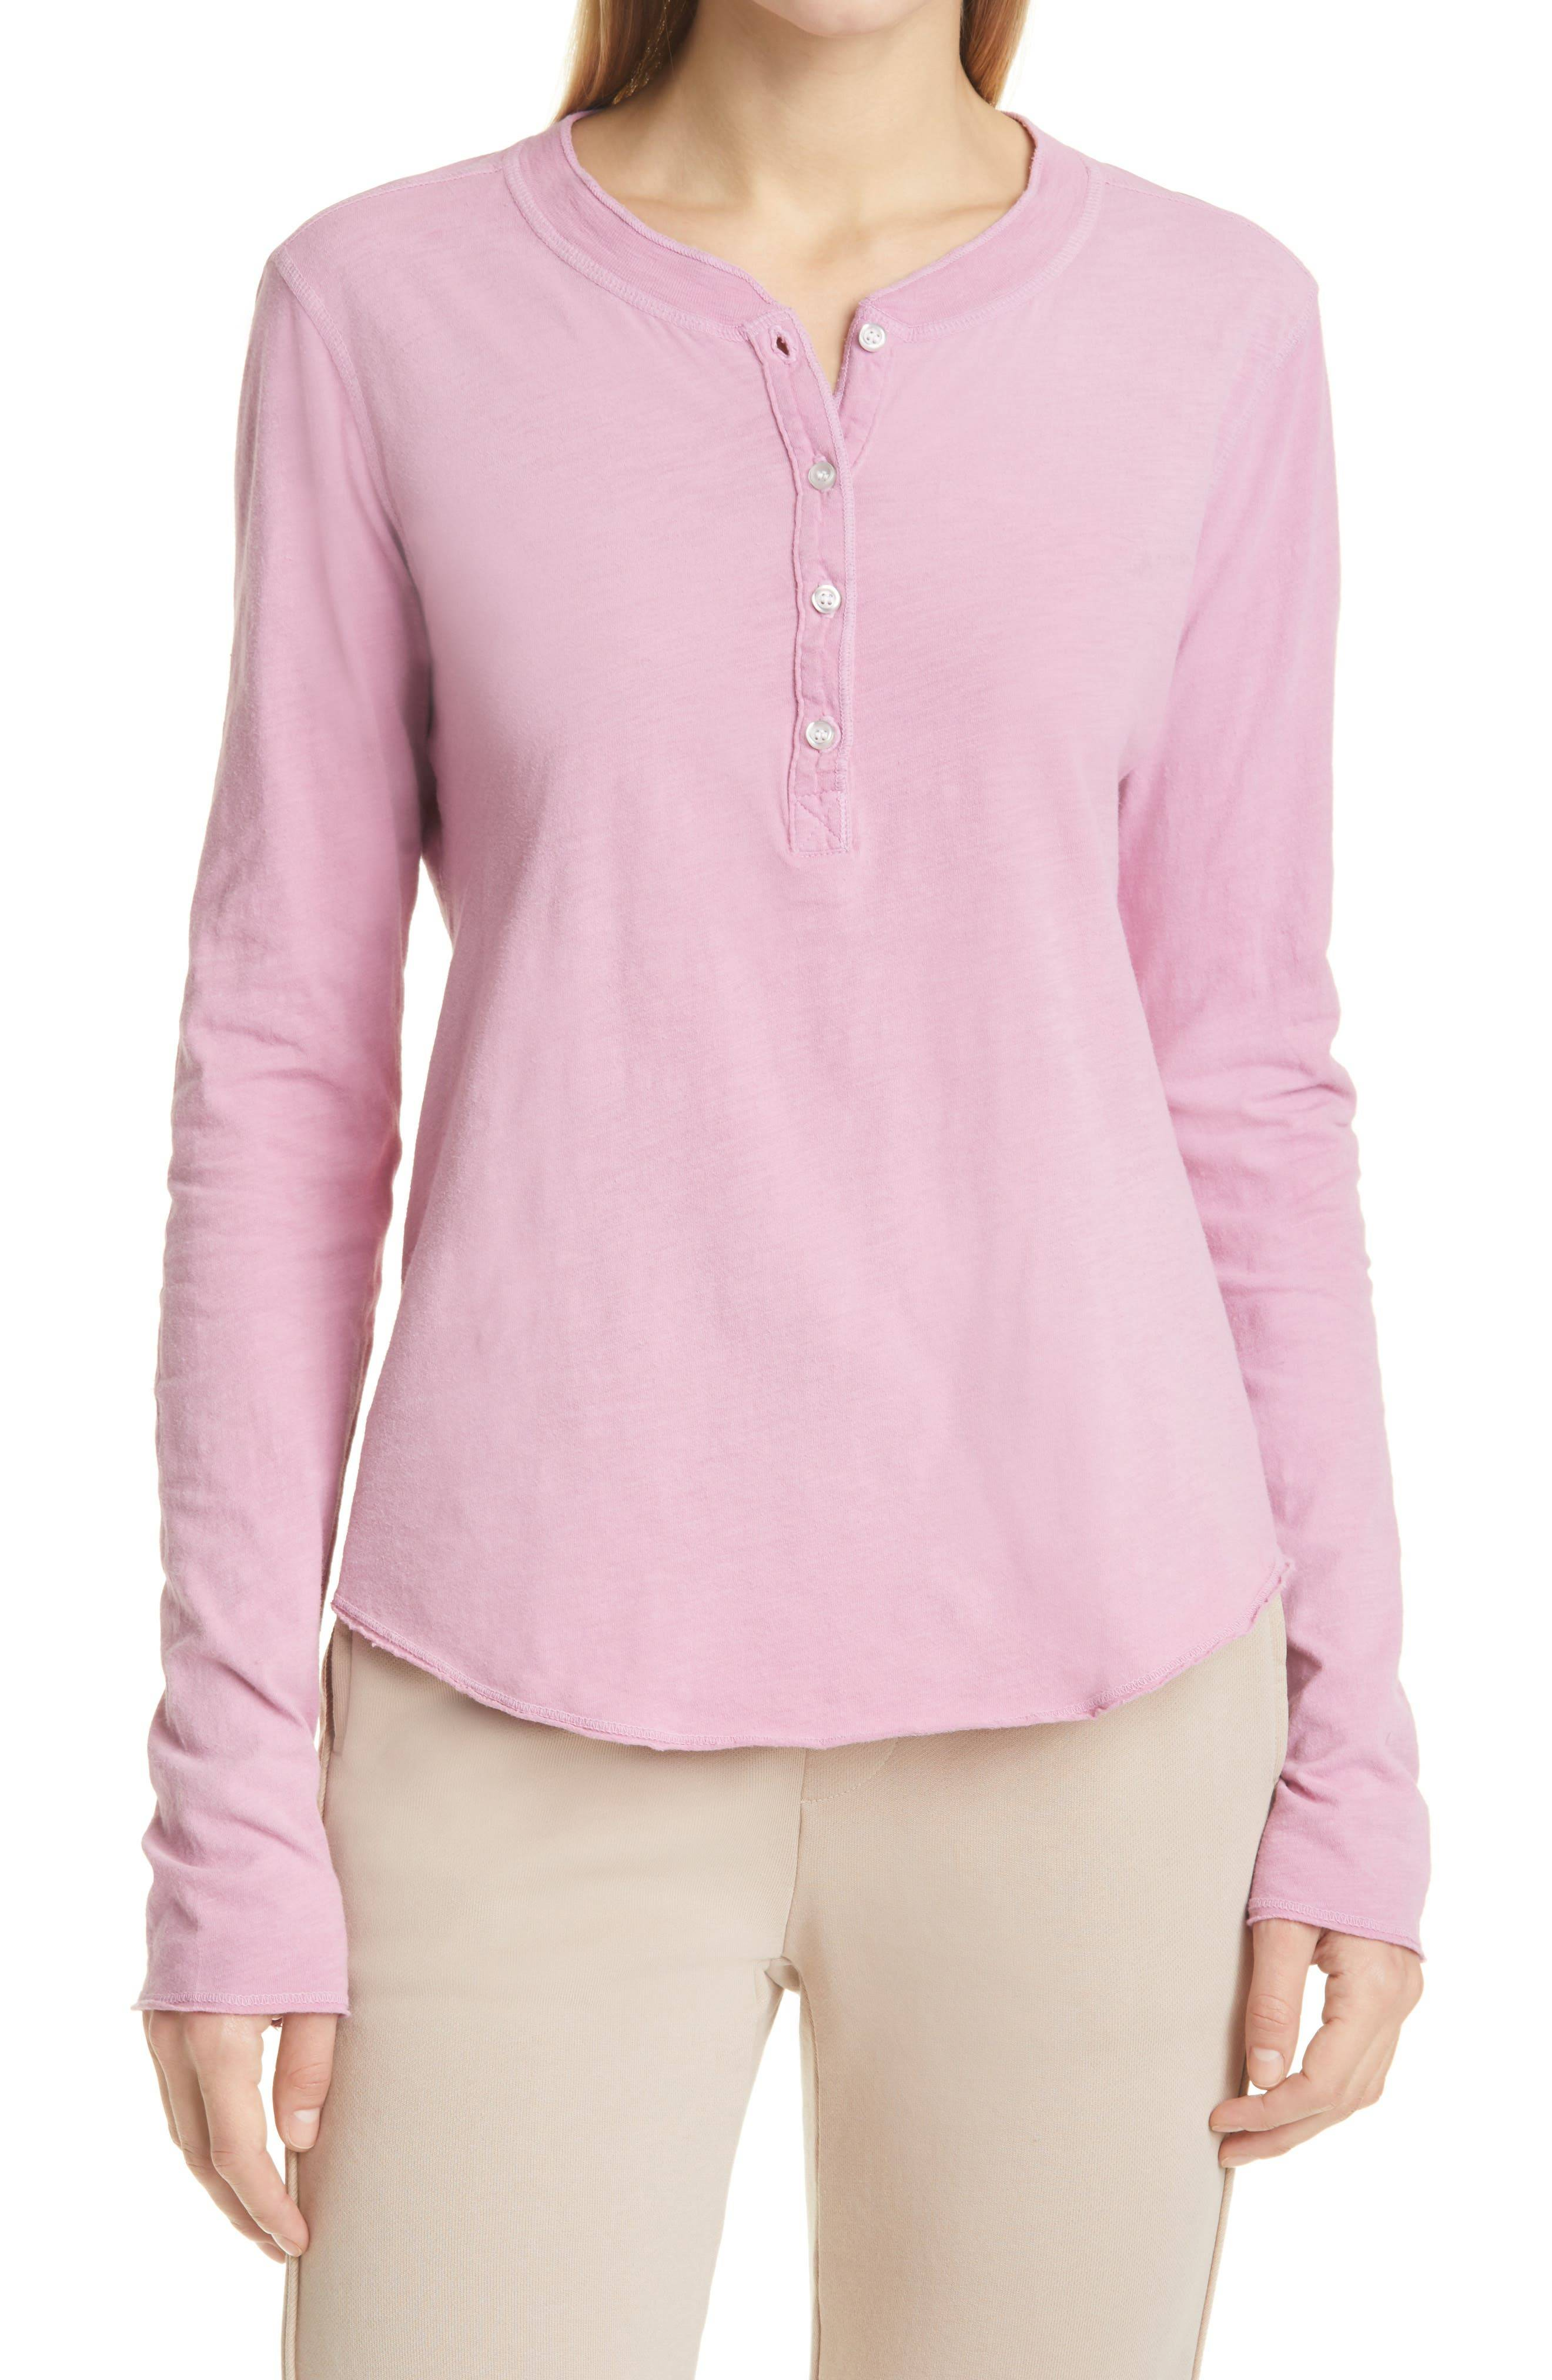 NSF Clothing Women's Nsf Clothing Hal Women's Henley Top, Size X-Large - Pink